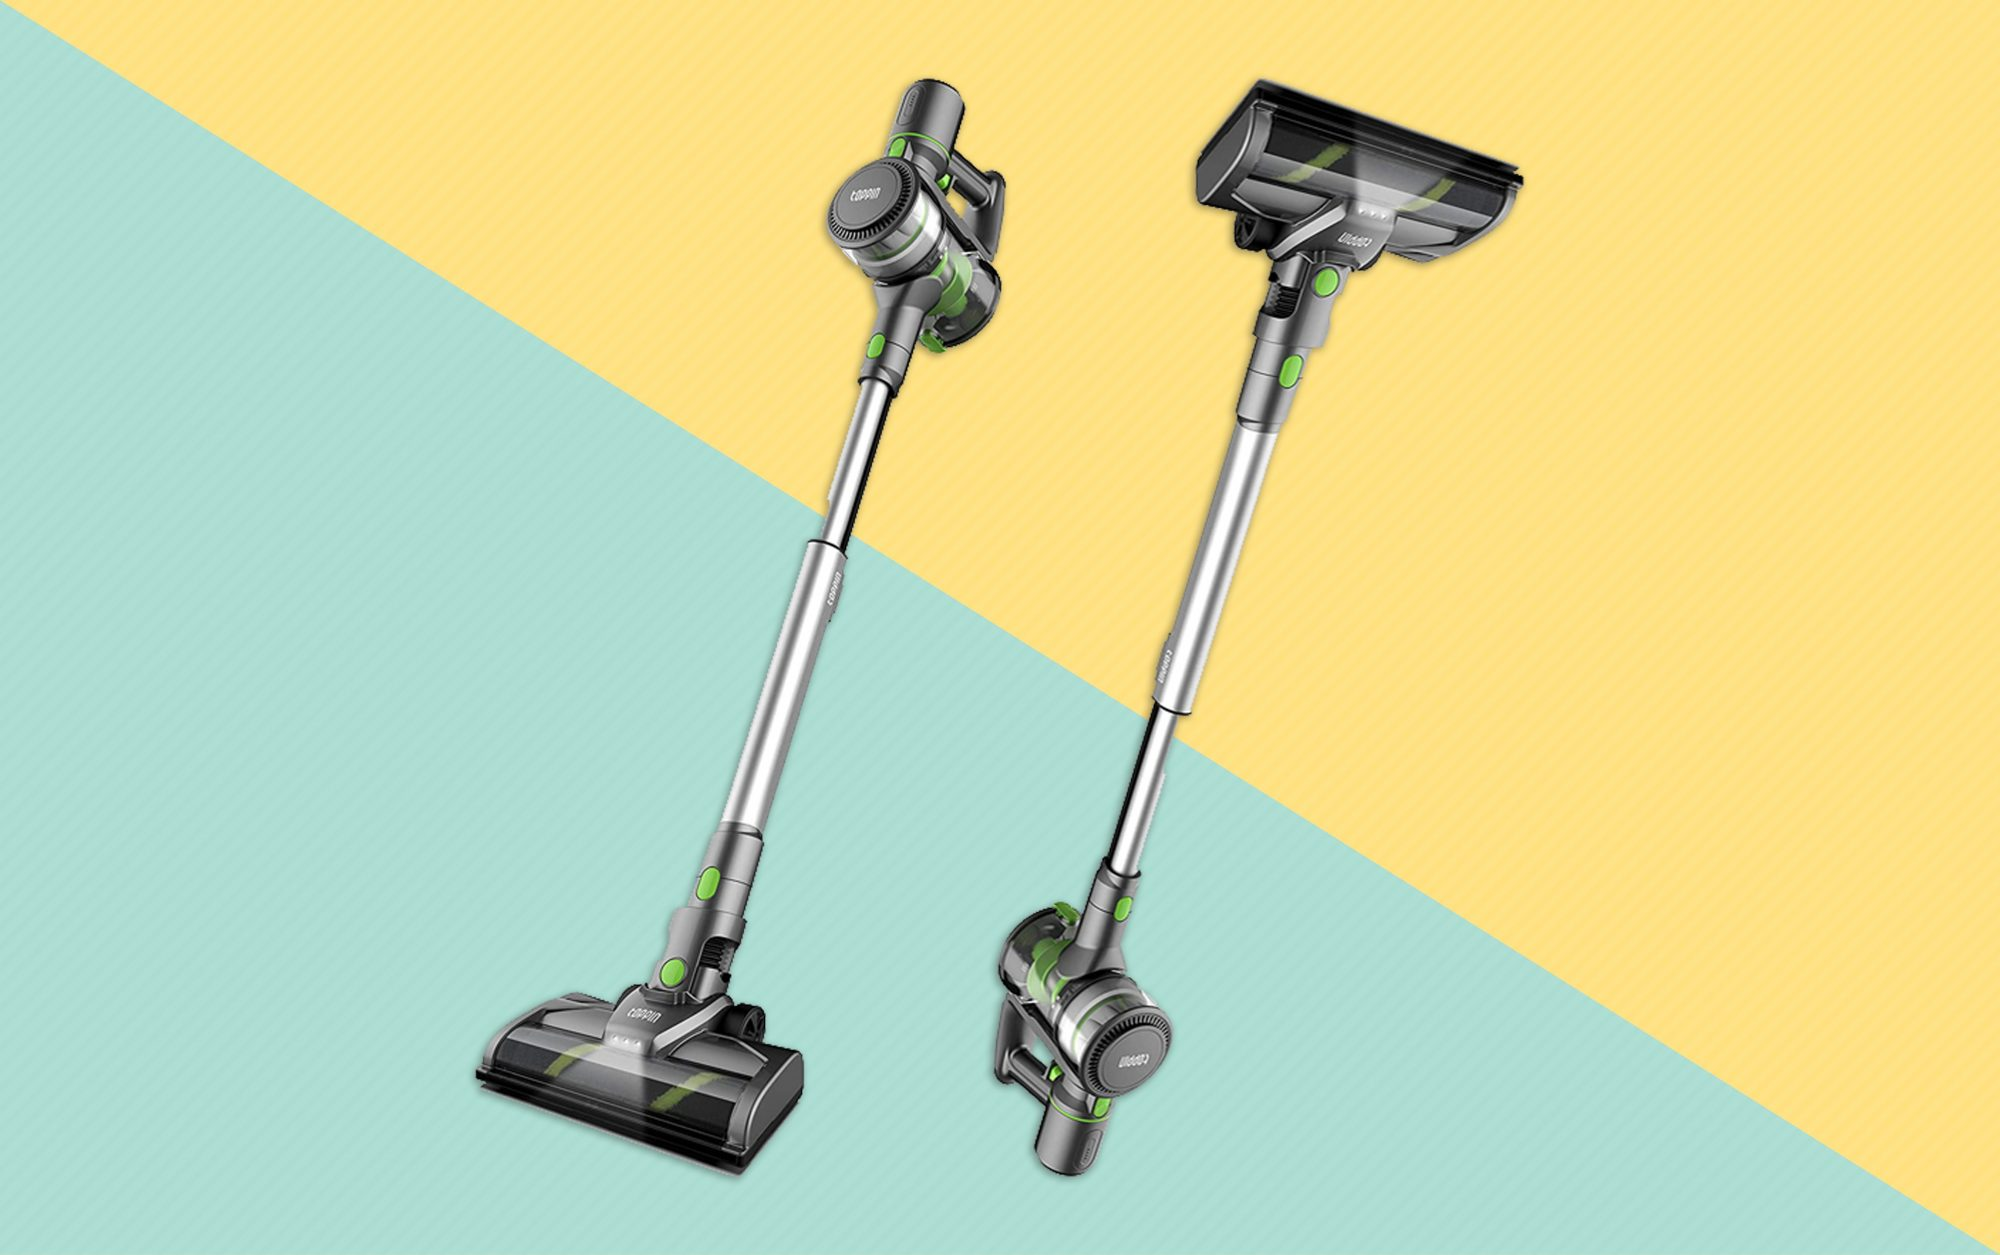 The Toppin cordless vacuum